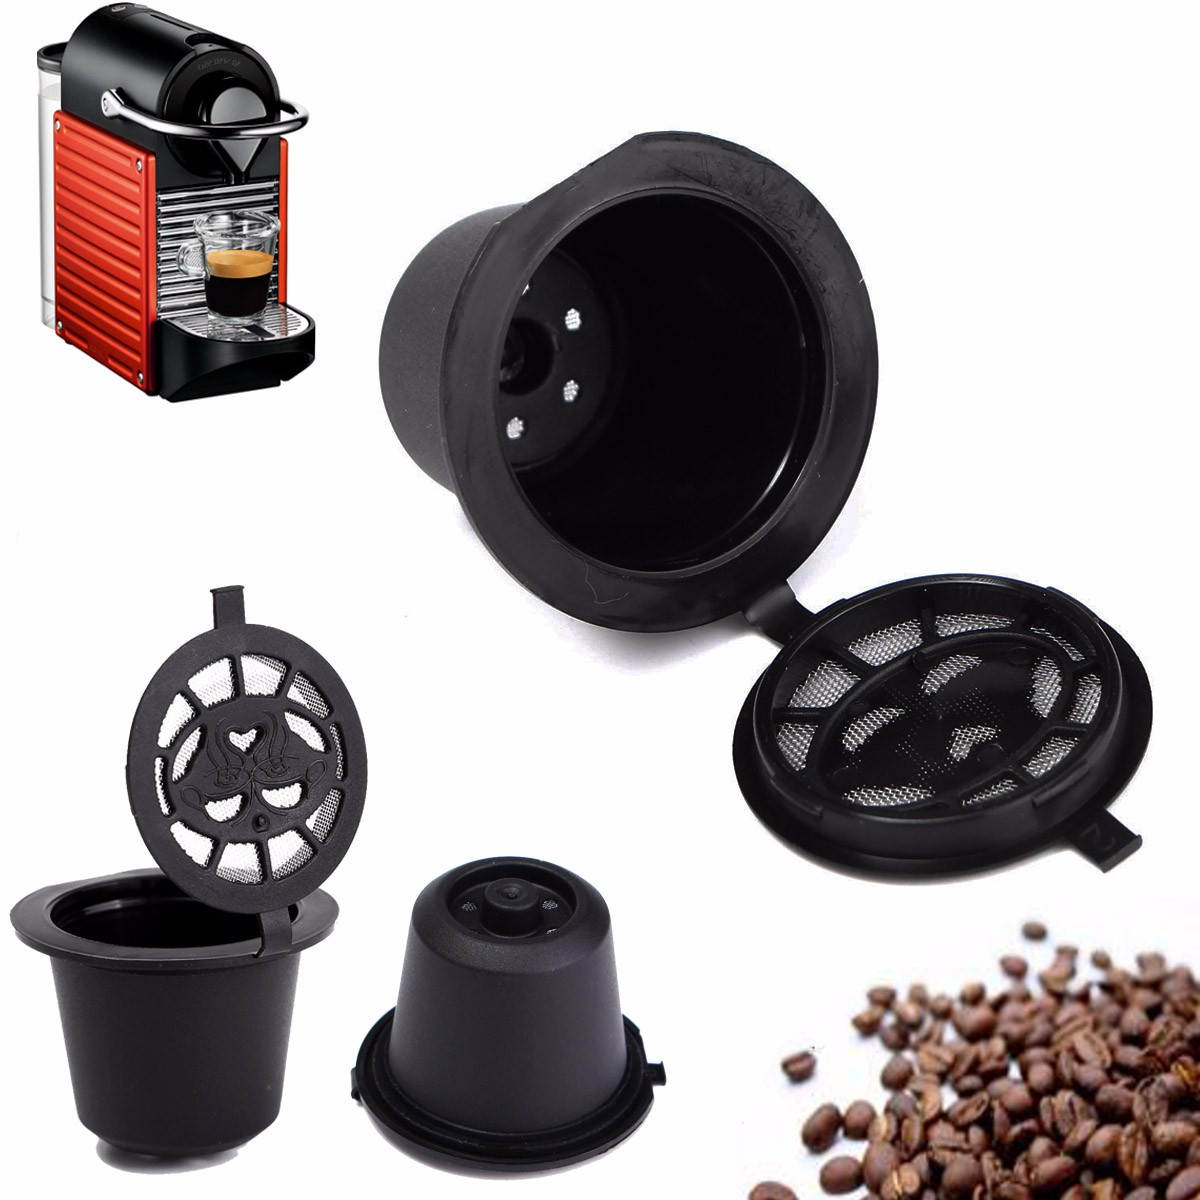 Reusable Nespresso Capsules, Refillable Pod Single Serve Coffee Filters for Nespresso Brewing Machines - 3 PACK